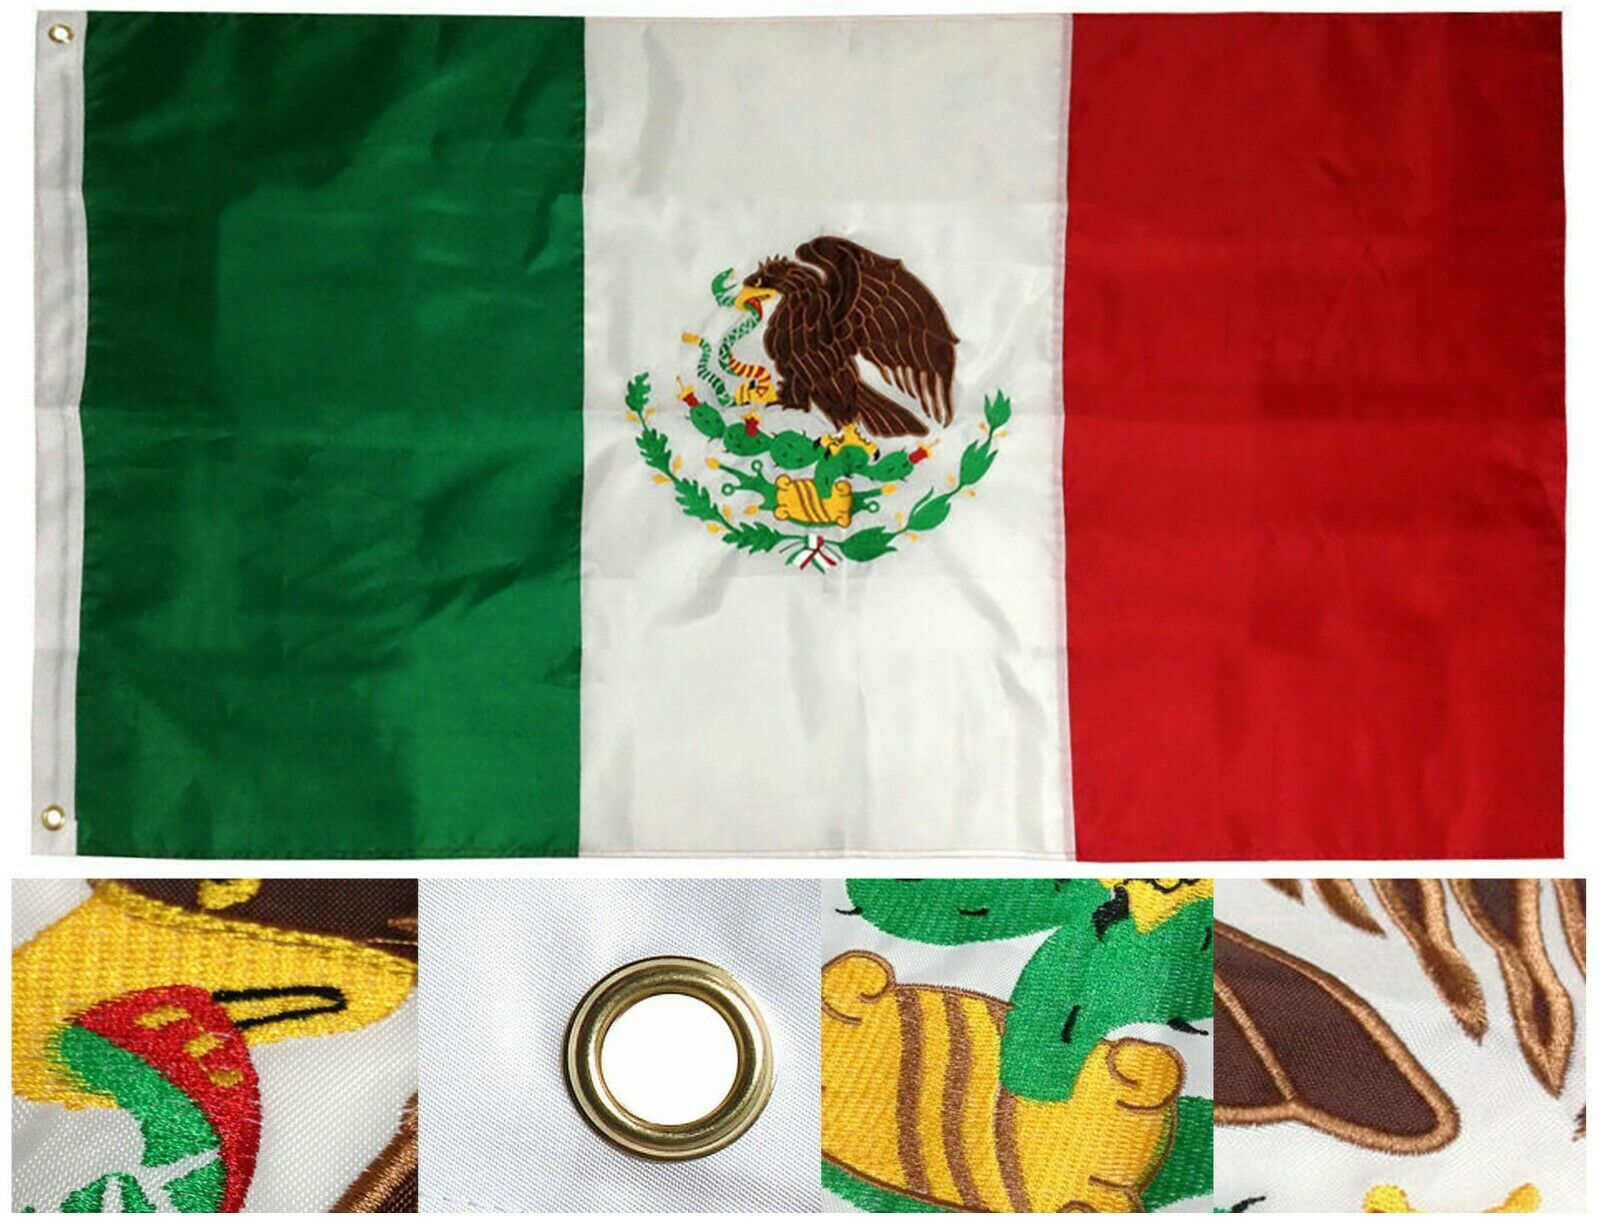 3' X 5' 3x5 Mexico Flag Embroidered Mexican Flag 2 Double Sided Nylon USA  Ship for sale online   eBay